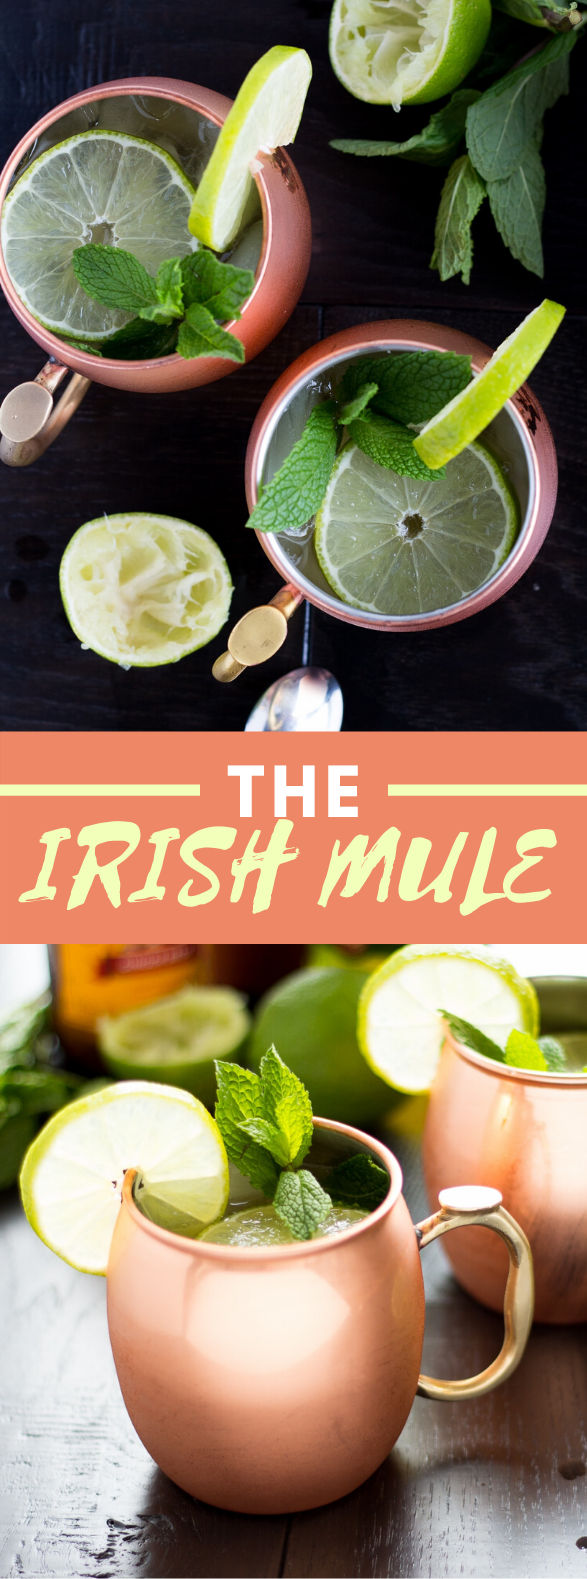 THE IRISH MULE #drinks #whiskey